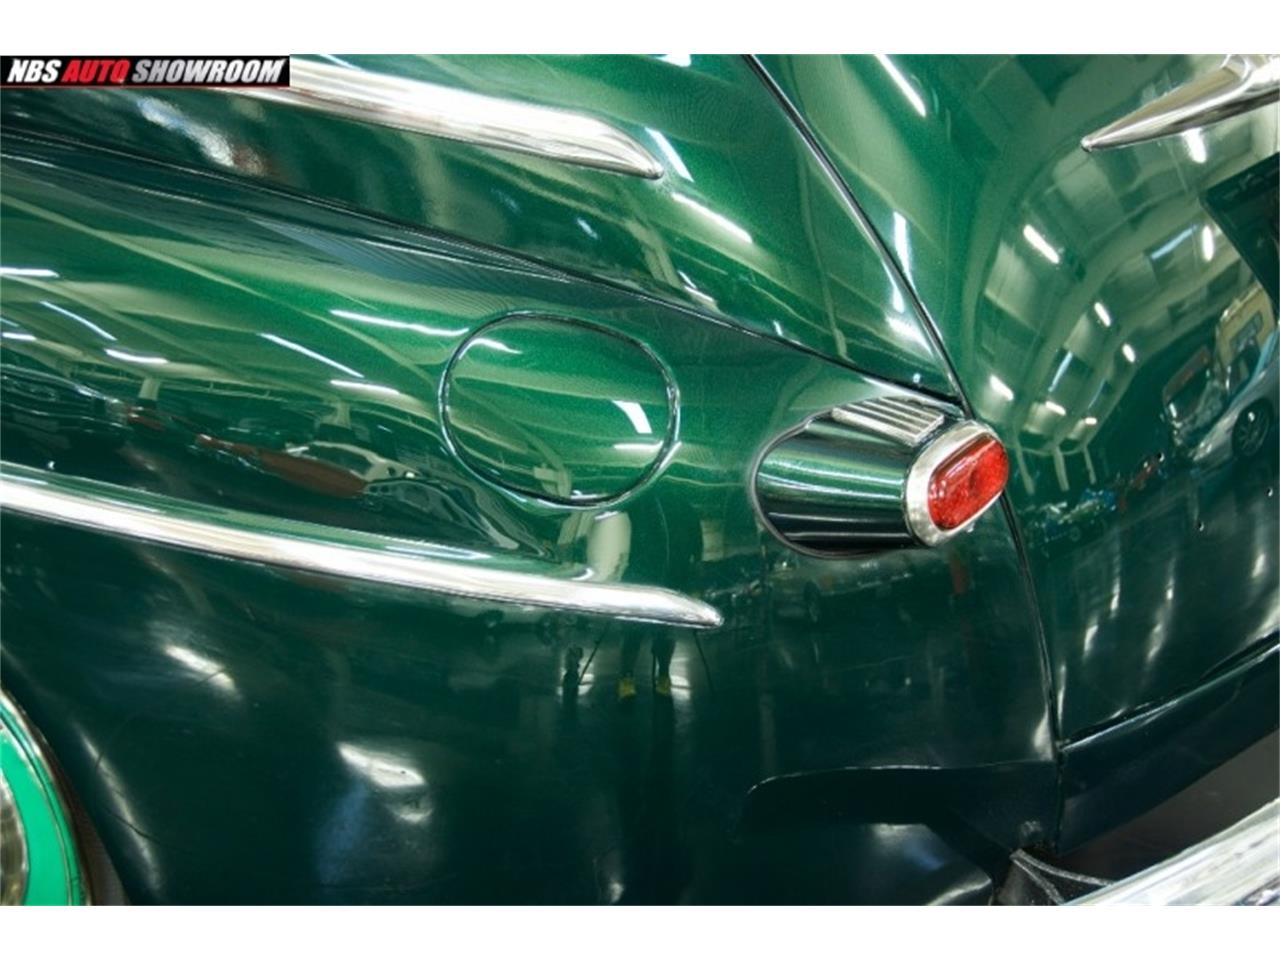 Large Picture of '47 Ford Deluxe Offered by NBS Auto Showroom - PXT0